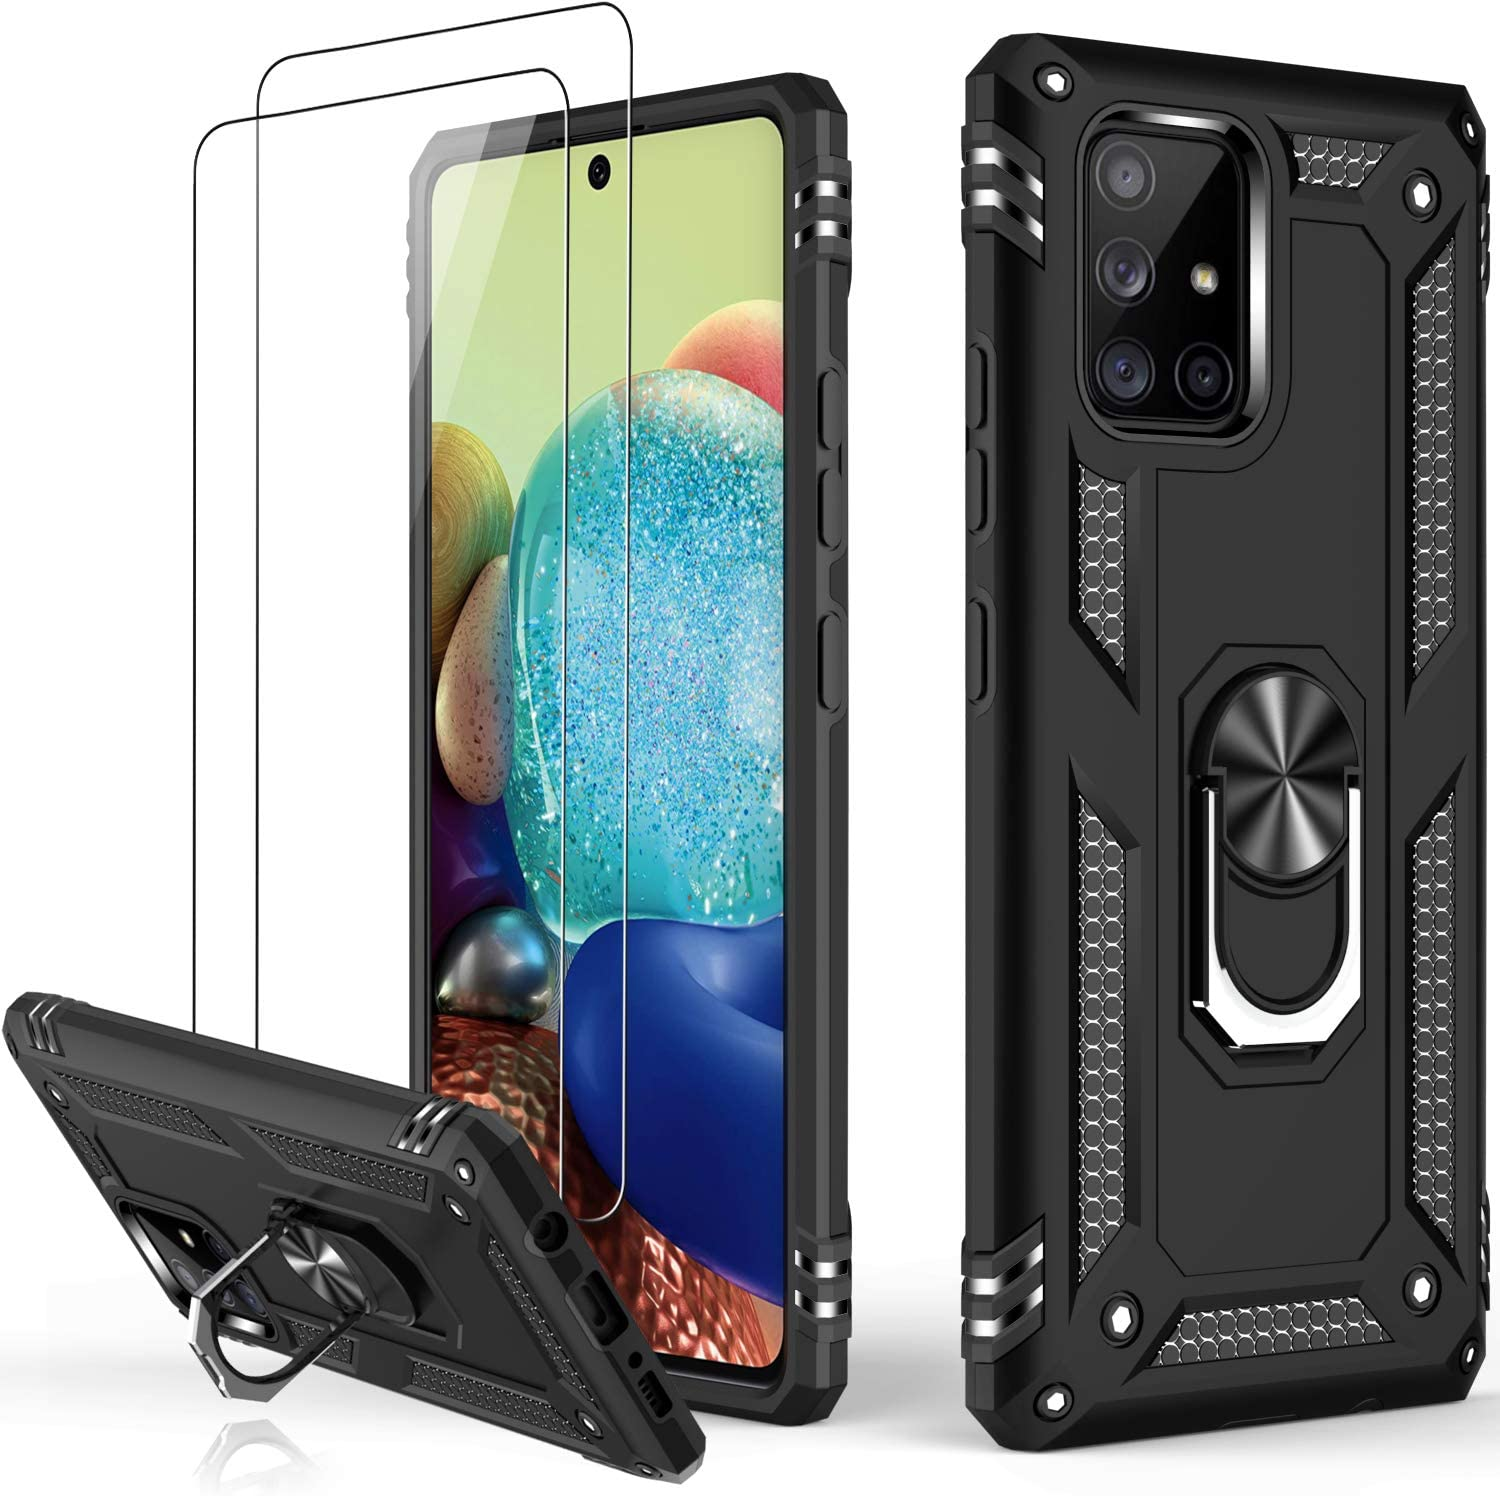 LUMARKE Galaxy A71 Case,Pass 16ft. Drop Tested Military Grade Cover with Magnetic Ring Kickstand Compatible with Car Mount Holder,Protective Phone Case for Samsung Galaxy A71 4G LTE Black